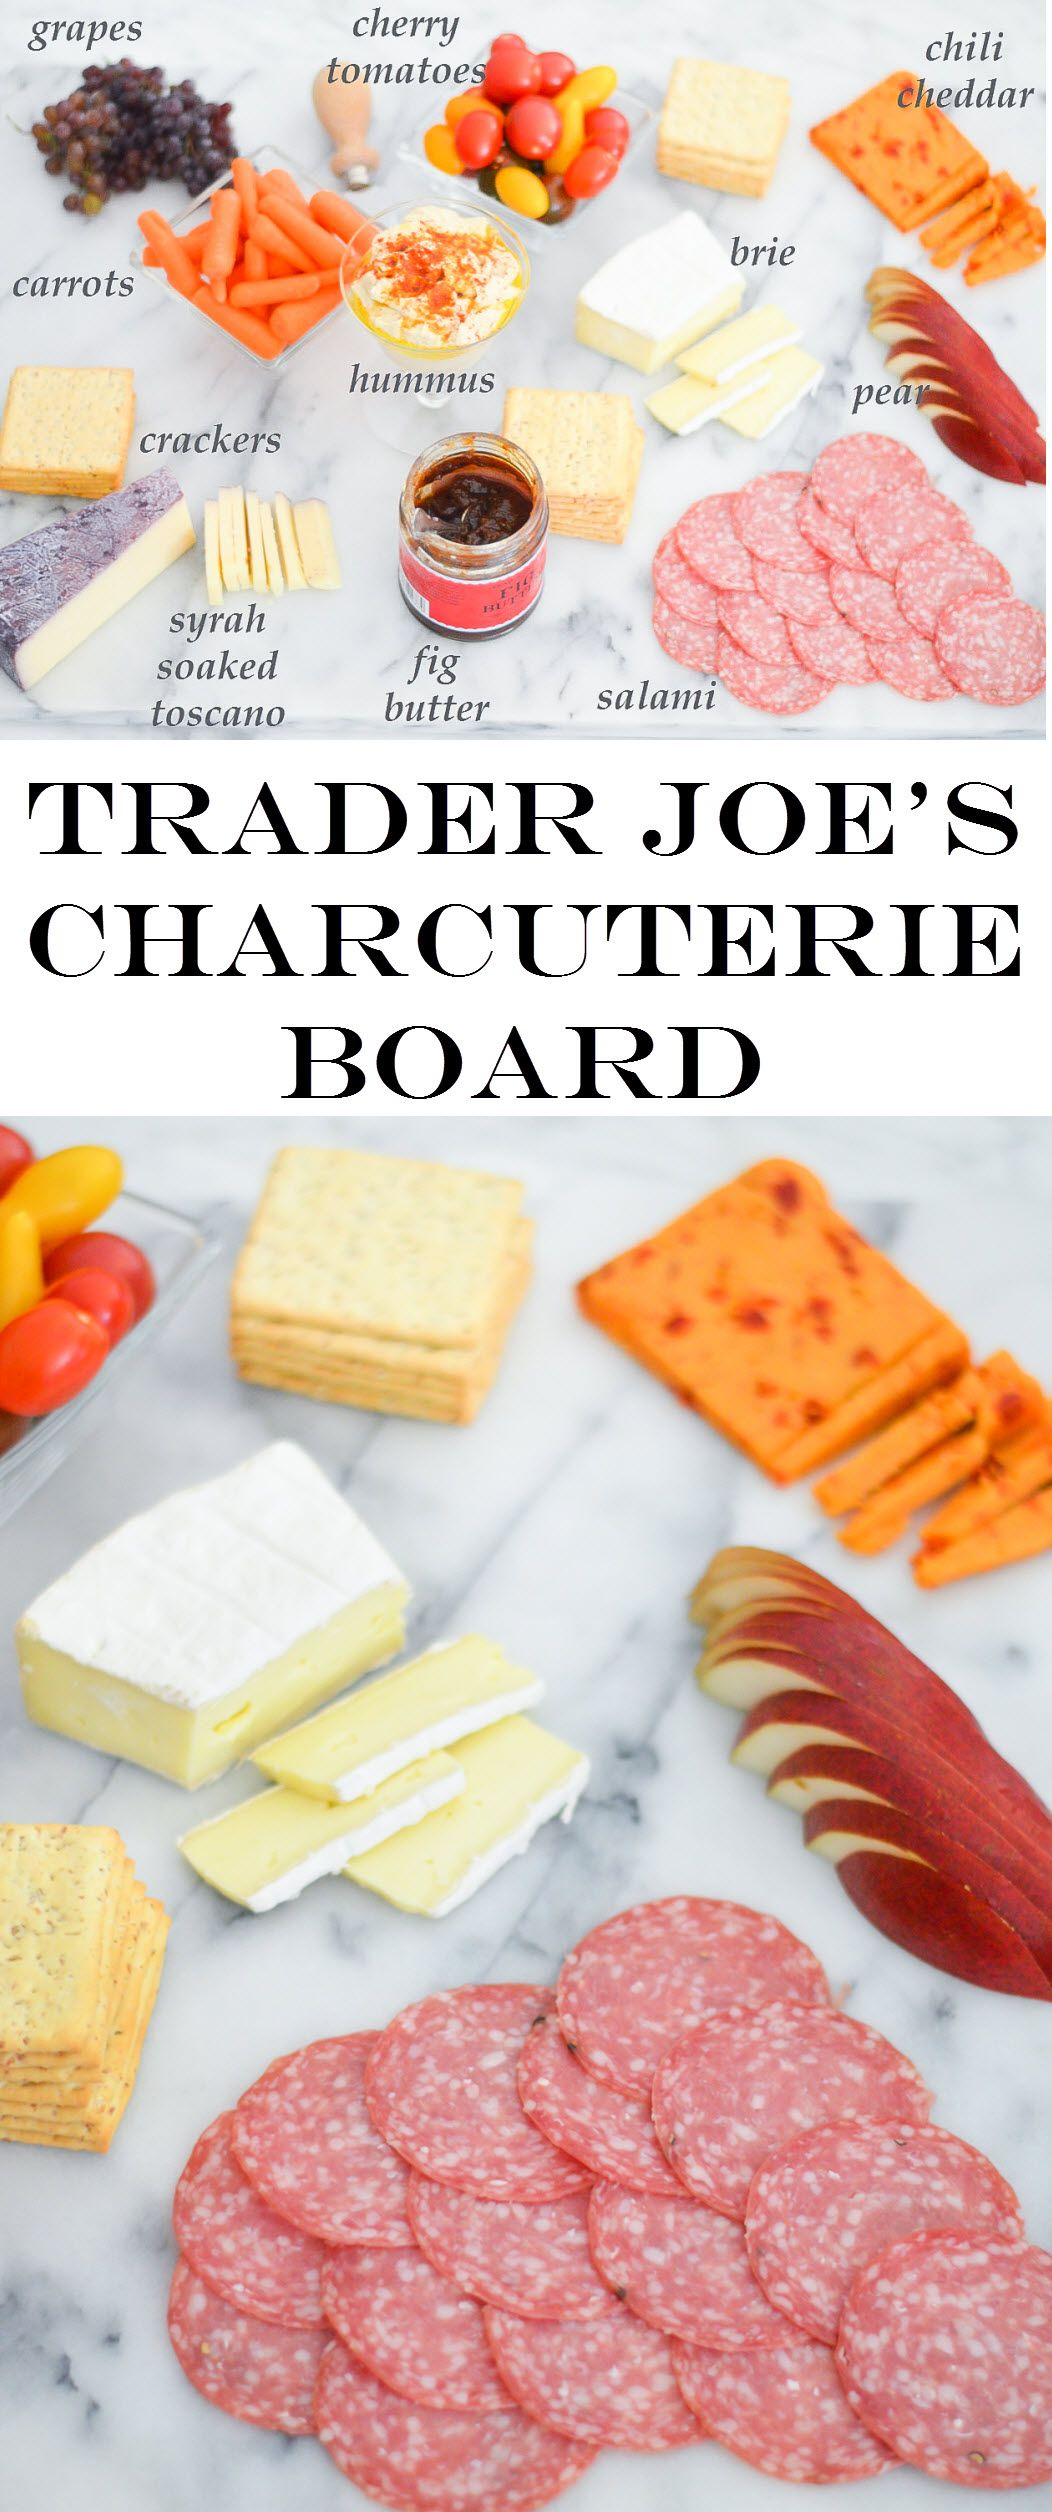 What to buy at trader joe\'s | easy + inexpensive charcuterie ...